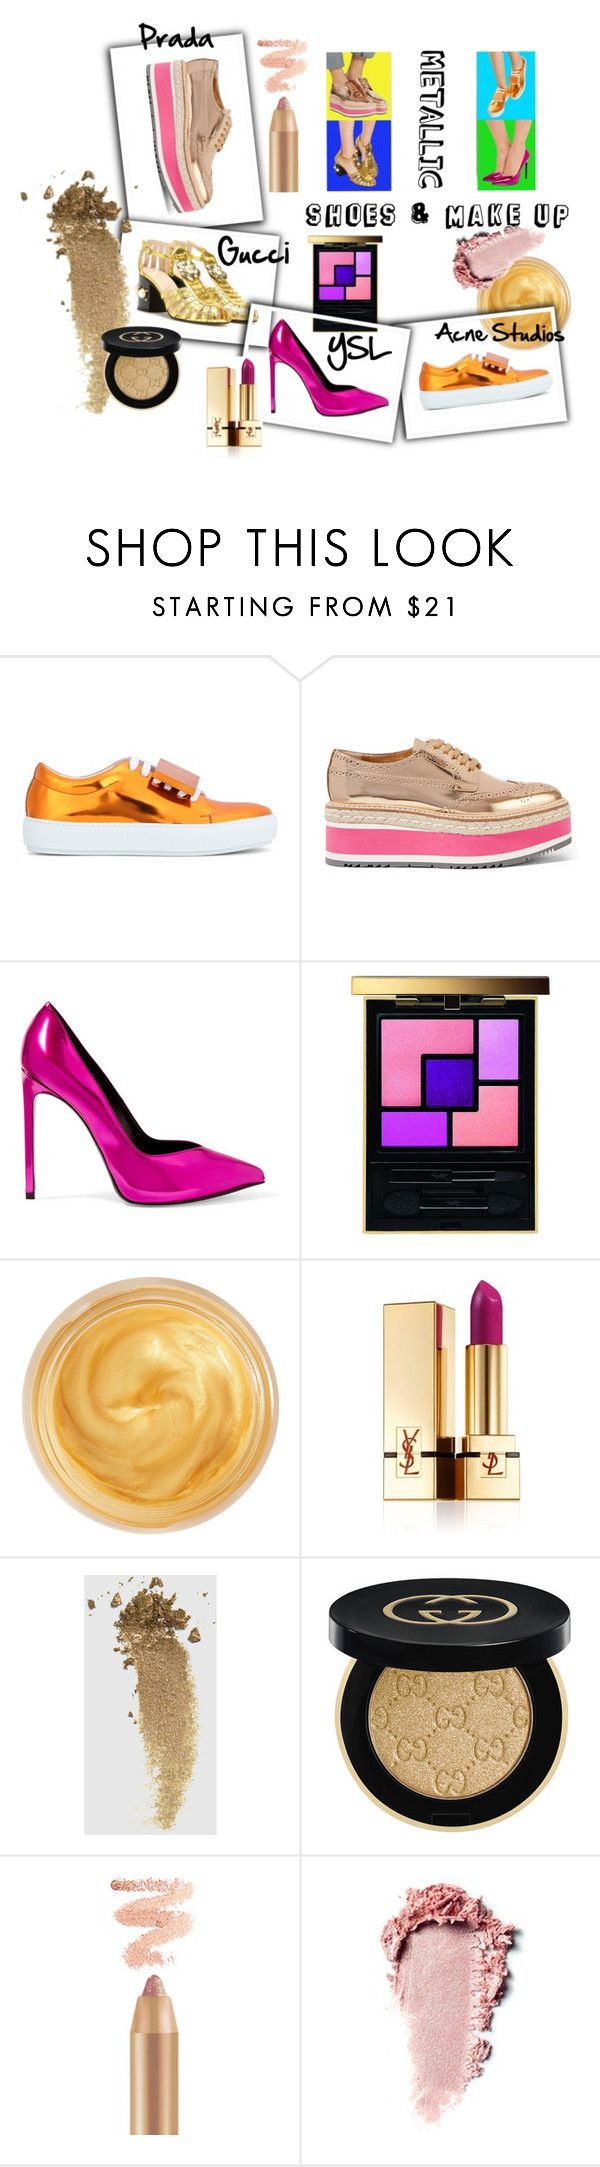 """Shoes & Make up in Metal"" by iris234 on Polyvore featuring beauty, Acne Studios, Prada, Yves Saint Laurent, Oribe and Gucci"